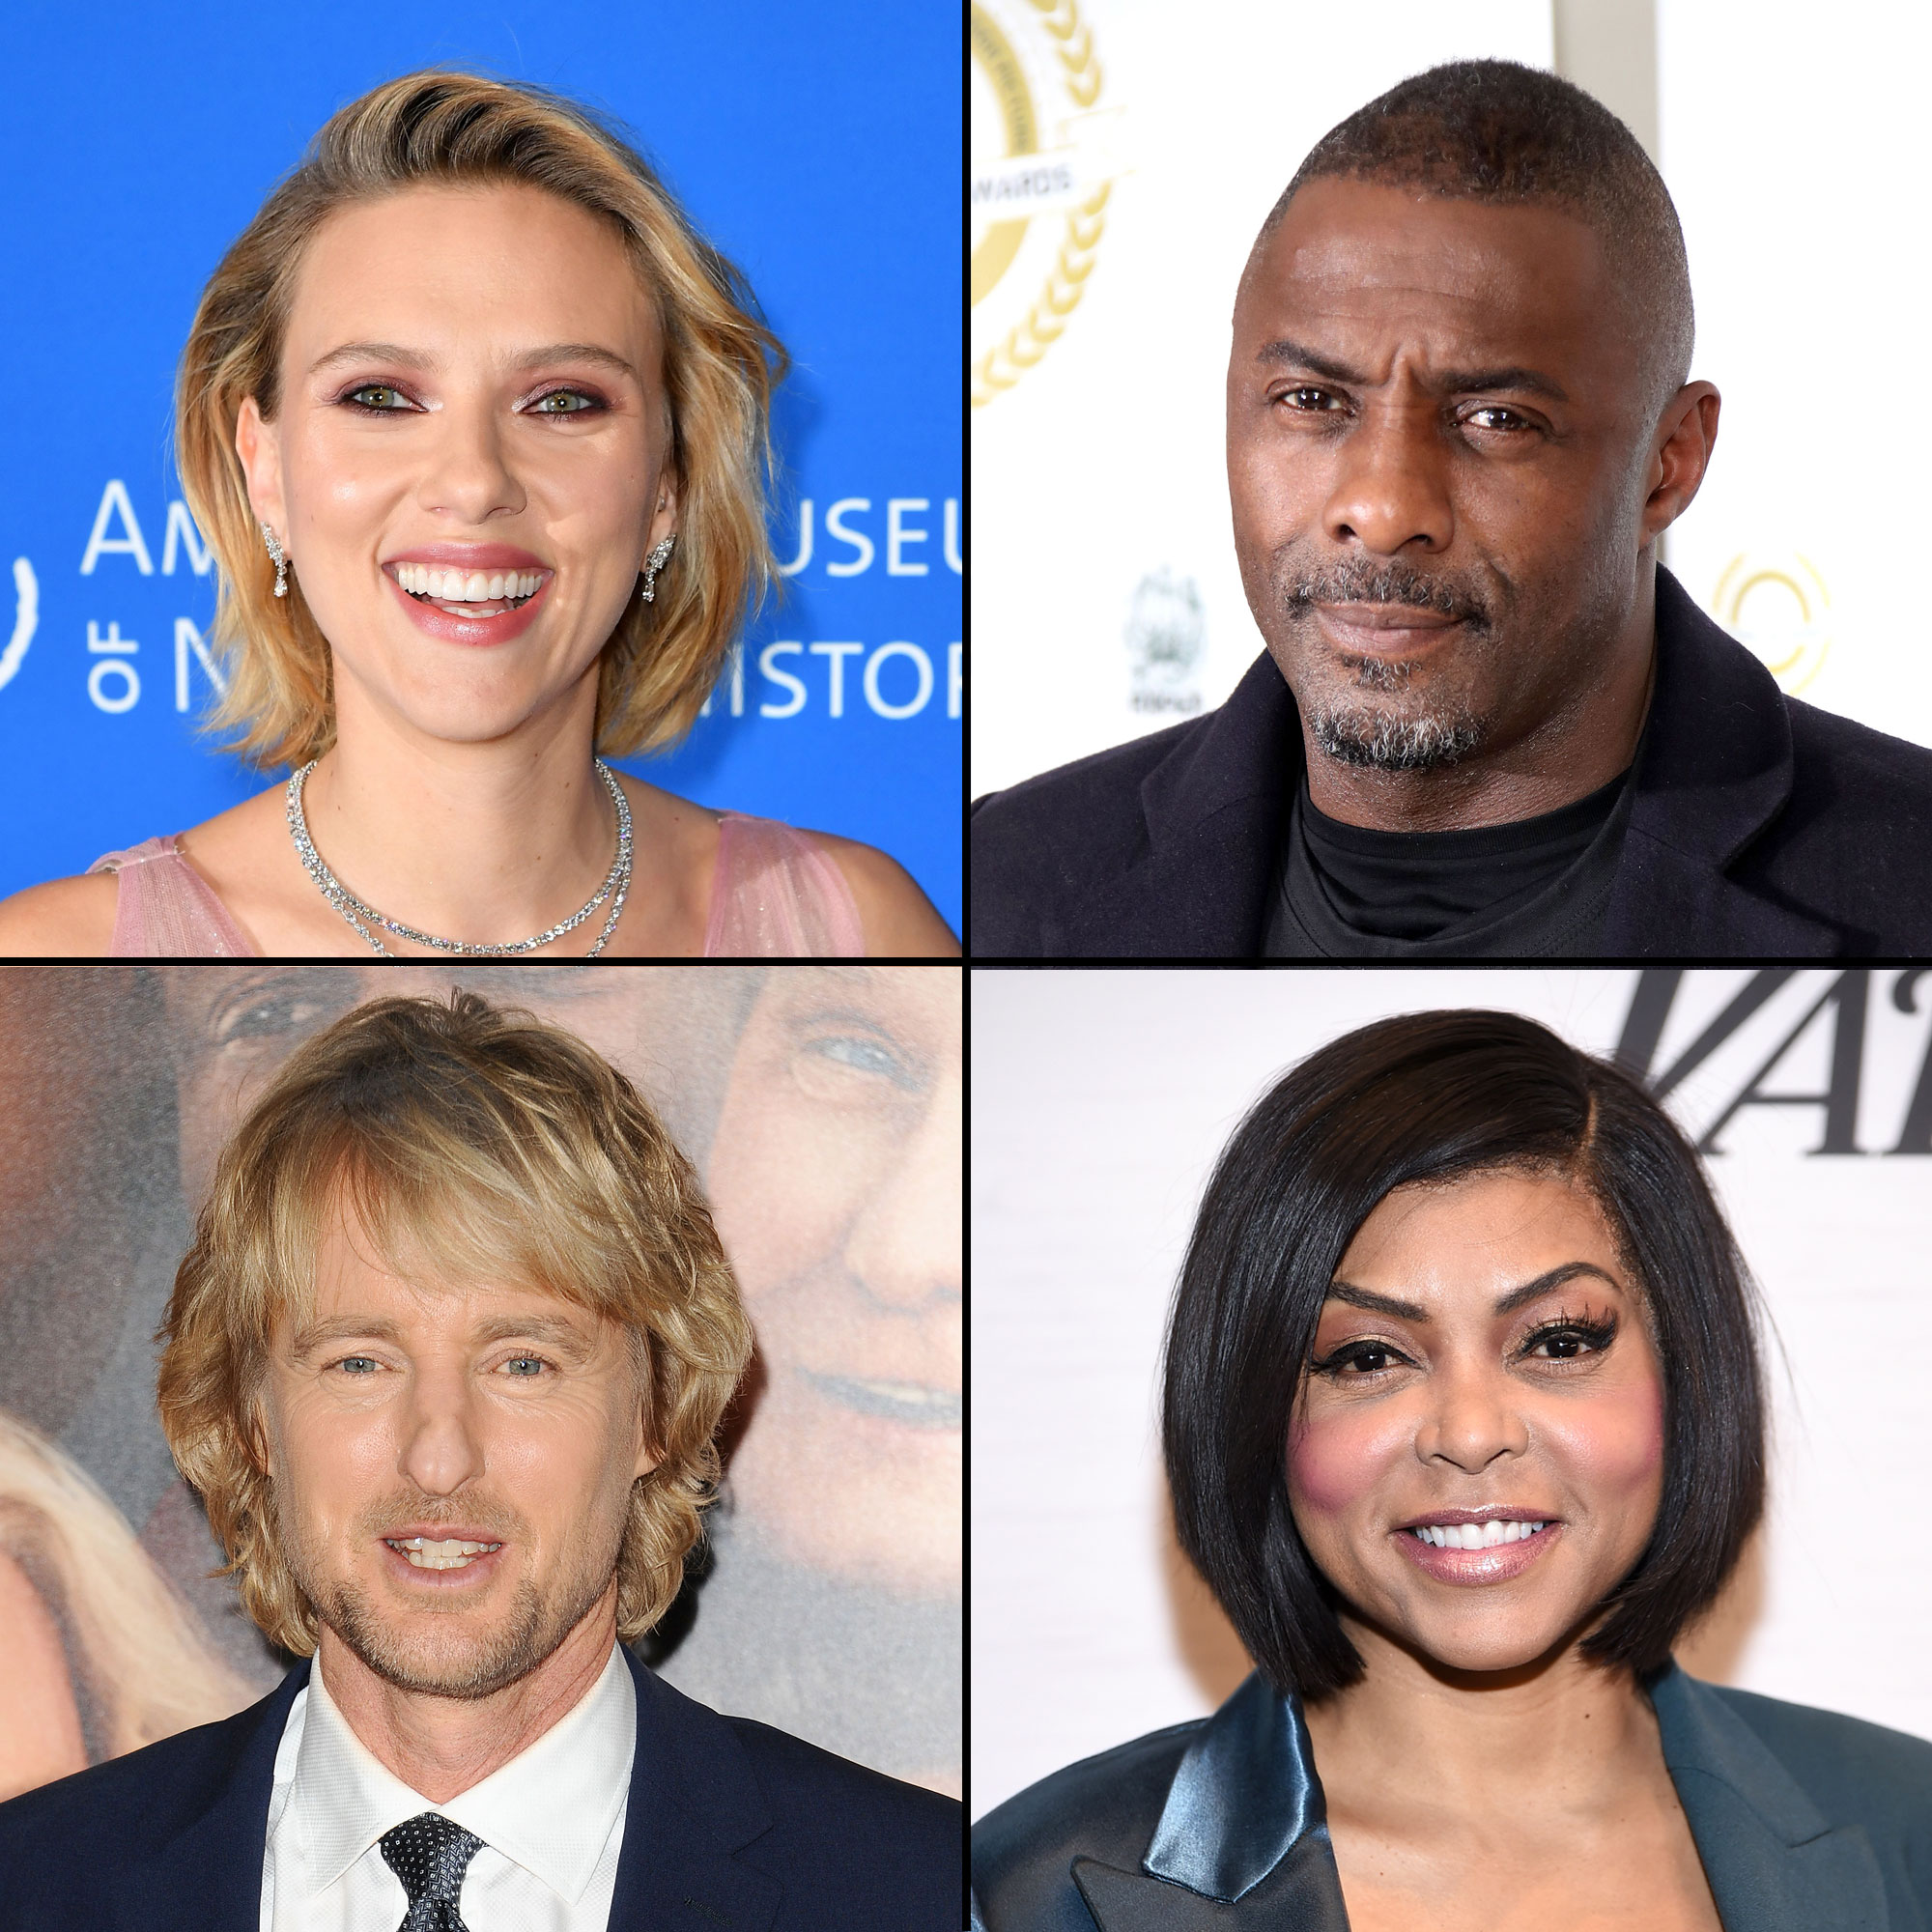 Scarlett Johansson Idris Elba Owen Wilson Taraji P. Henson Disney and Pixar Voice - Actress Scarlett Johansson attends the American Museum of Natural History's 2018 Museum Gala on November 15, 2018 in New York City. (Photo by Angela Weiss / AFP) (Photo credit should read ANGELA WEISS/AFP/Getty Images) LONDON, ENGLAND – MARCH 27: Idris Elba attends the National Film Awards at Porchester Hall on March 27, 2019 in London, […]